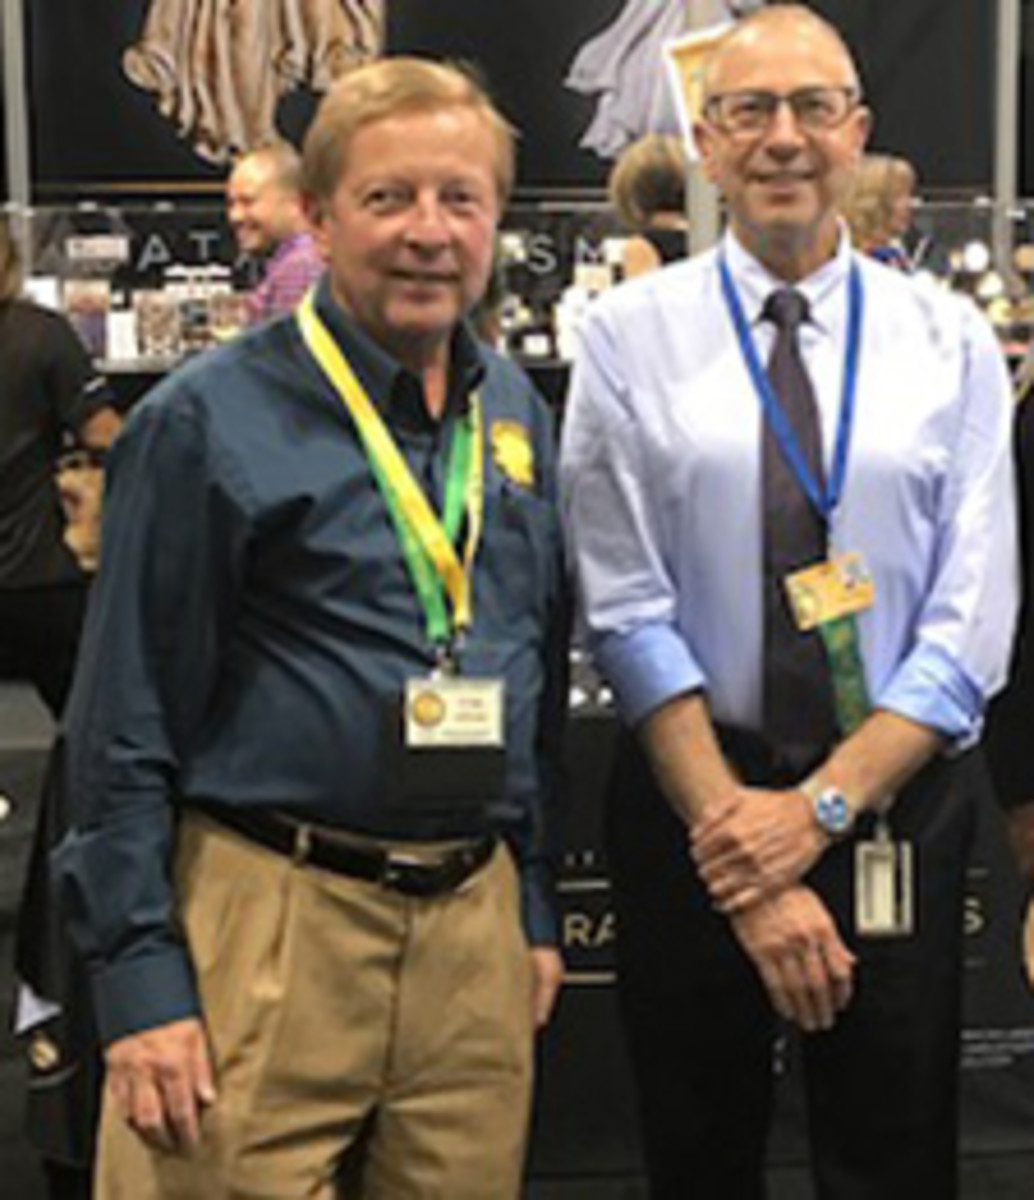 Pennsylvania Association of Numismatists President Tom Uram, left, will host Greg Weinman at the PAN show in May.